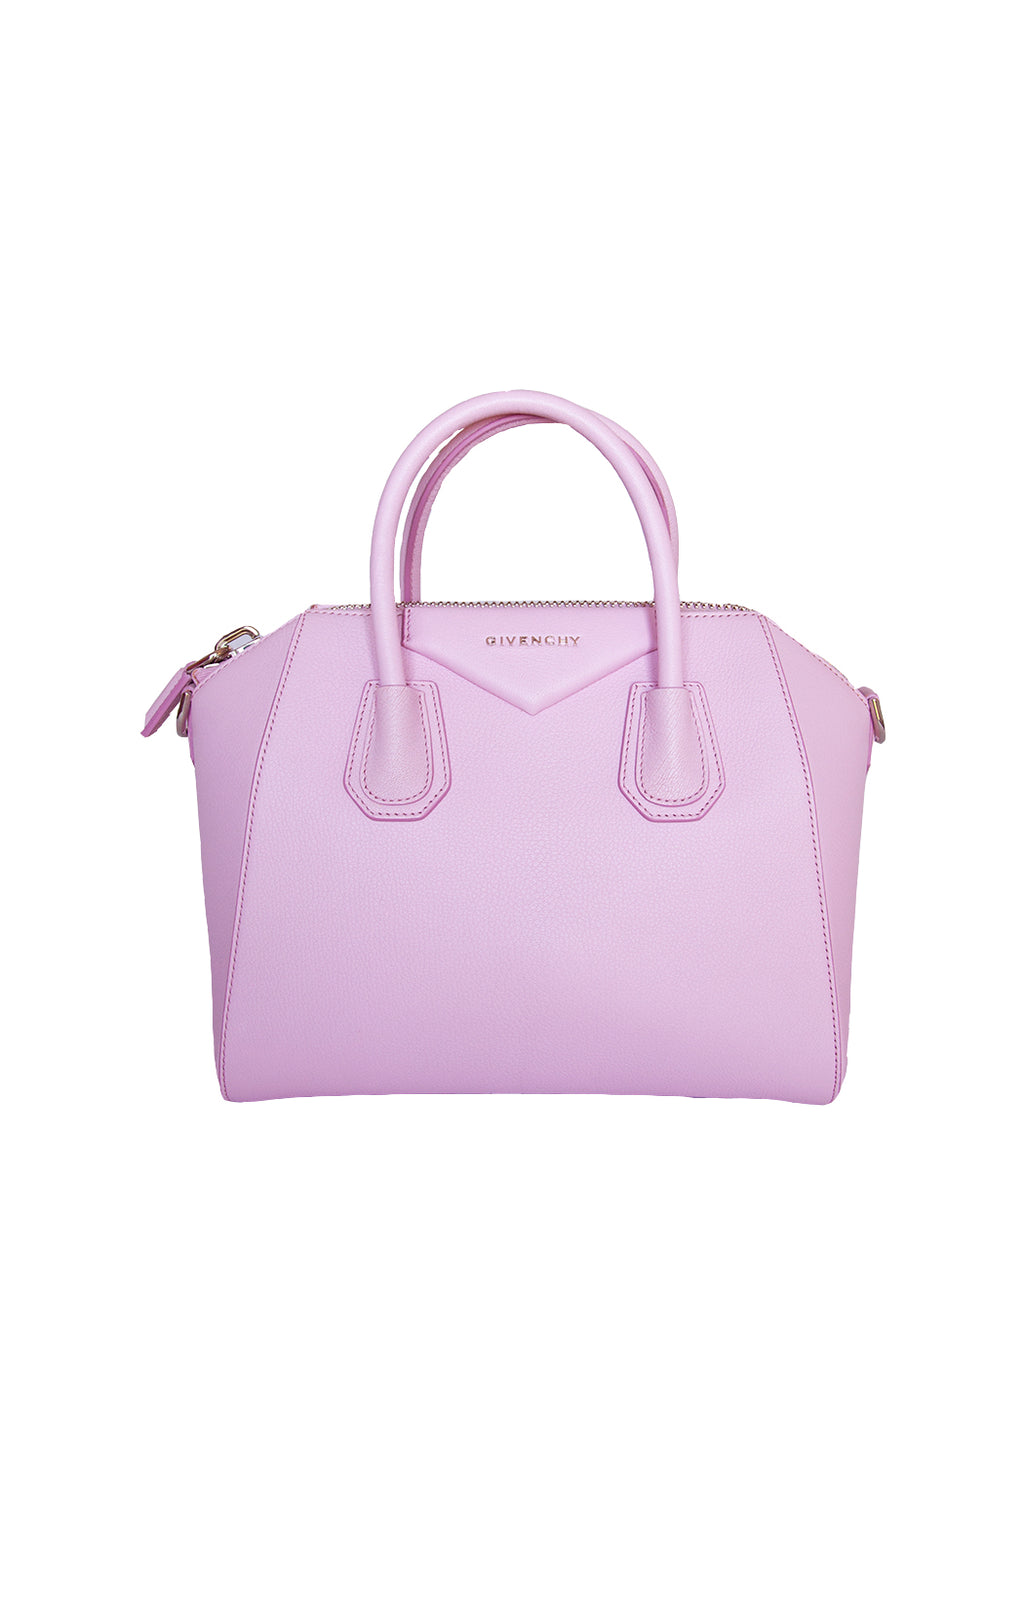 Front view of GIVENCHY Handbag Size: 13 in. x 10 in. x 7 in.